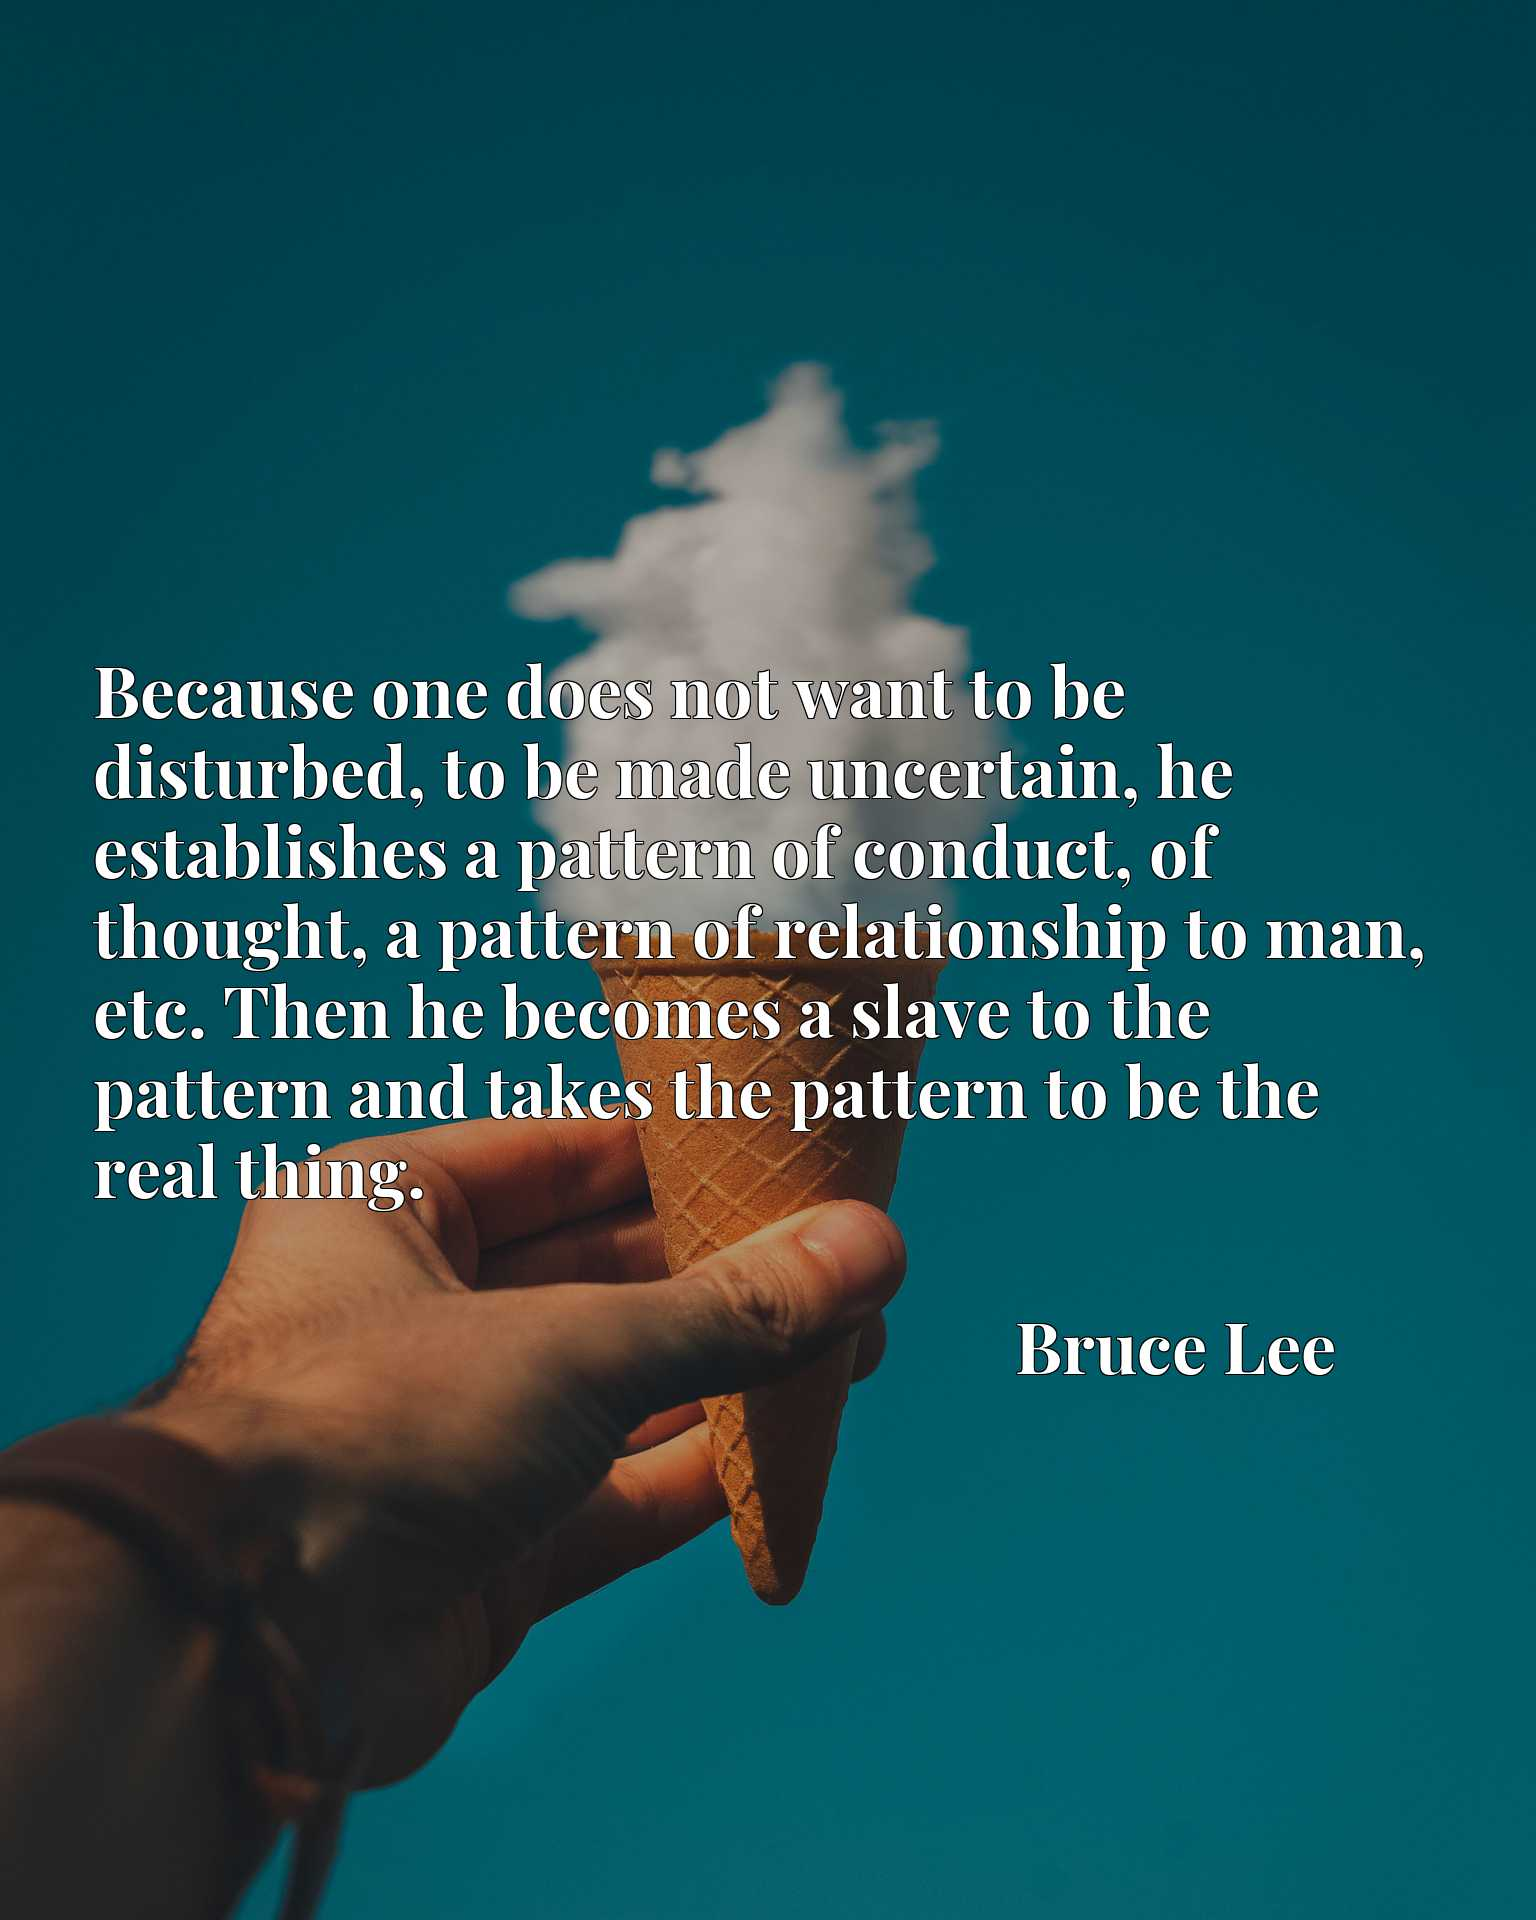 Because one does not want to be disturbed, to be made uncertain, he establishes a pattern of conduct, of thought, a pattern of relationship to man, etc. Then he becomes a slave to the pattern and takes the pattern to be the real thing.